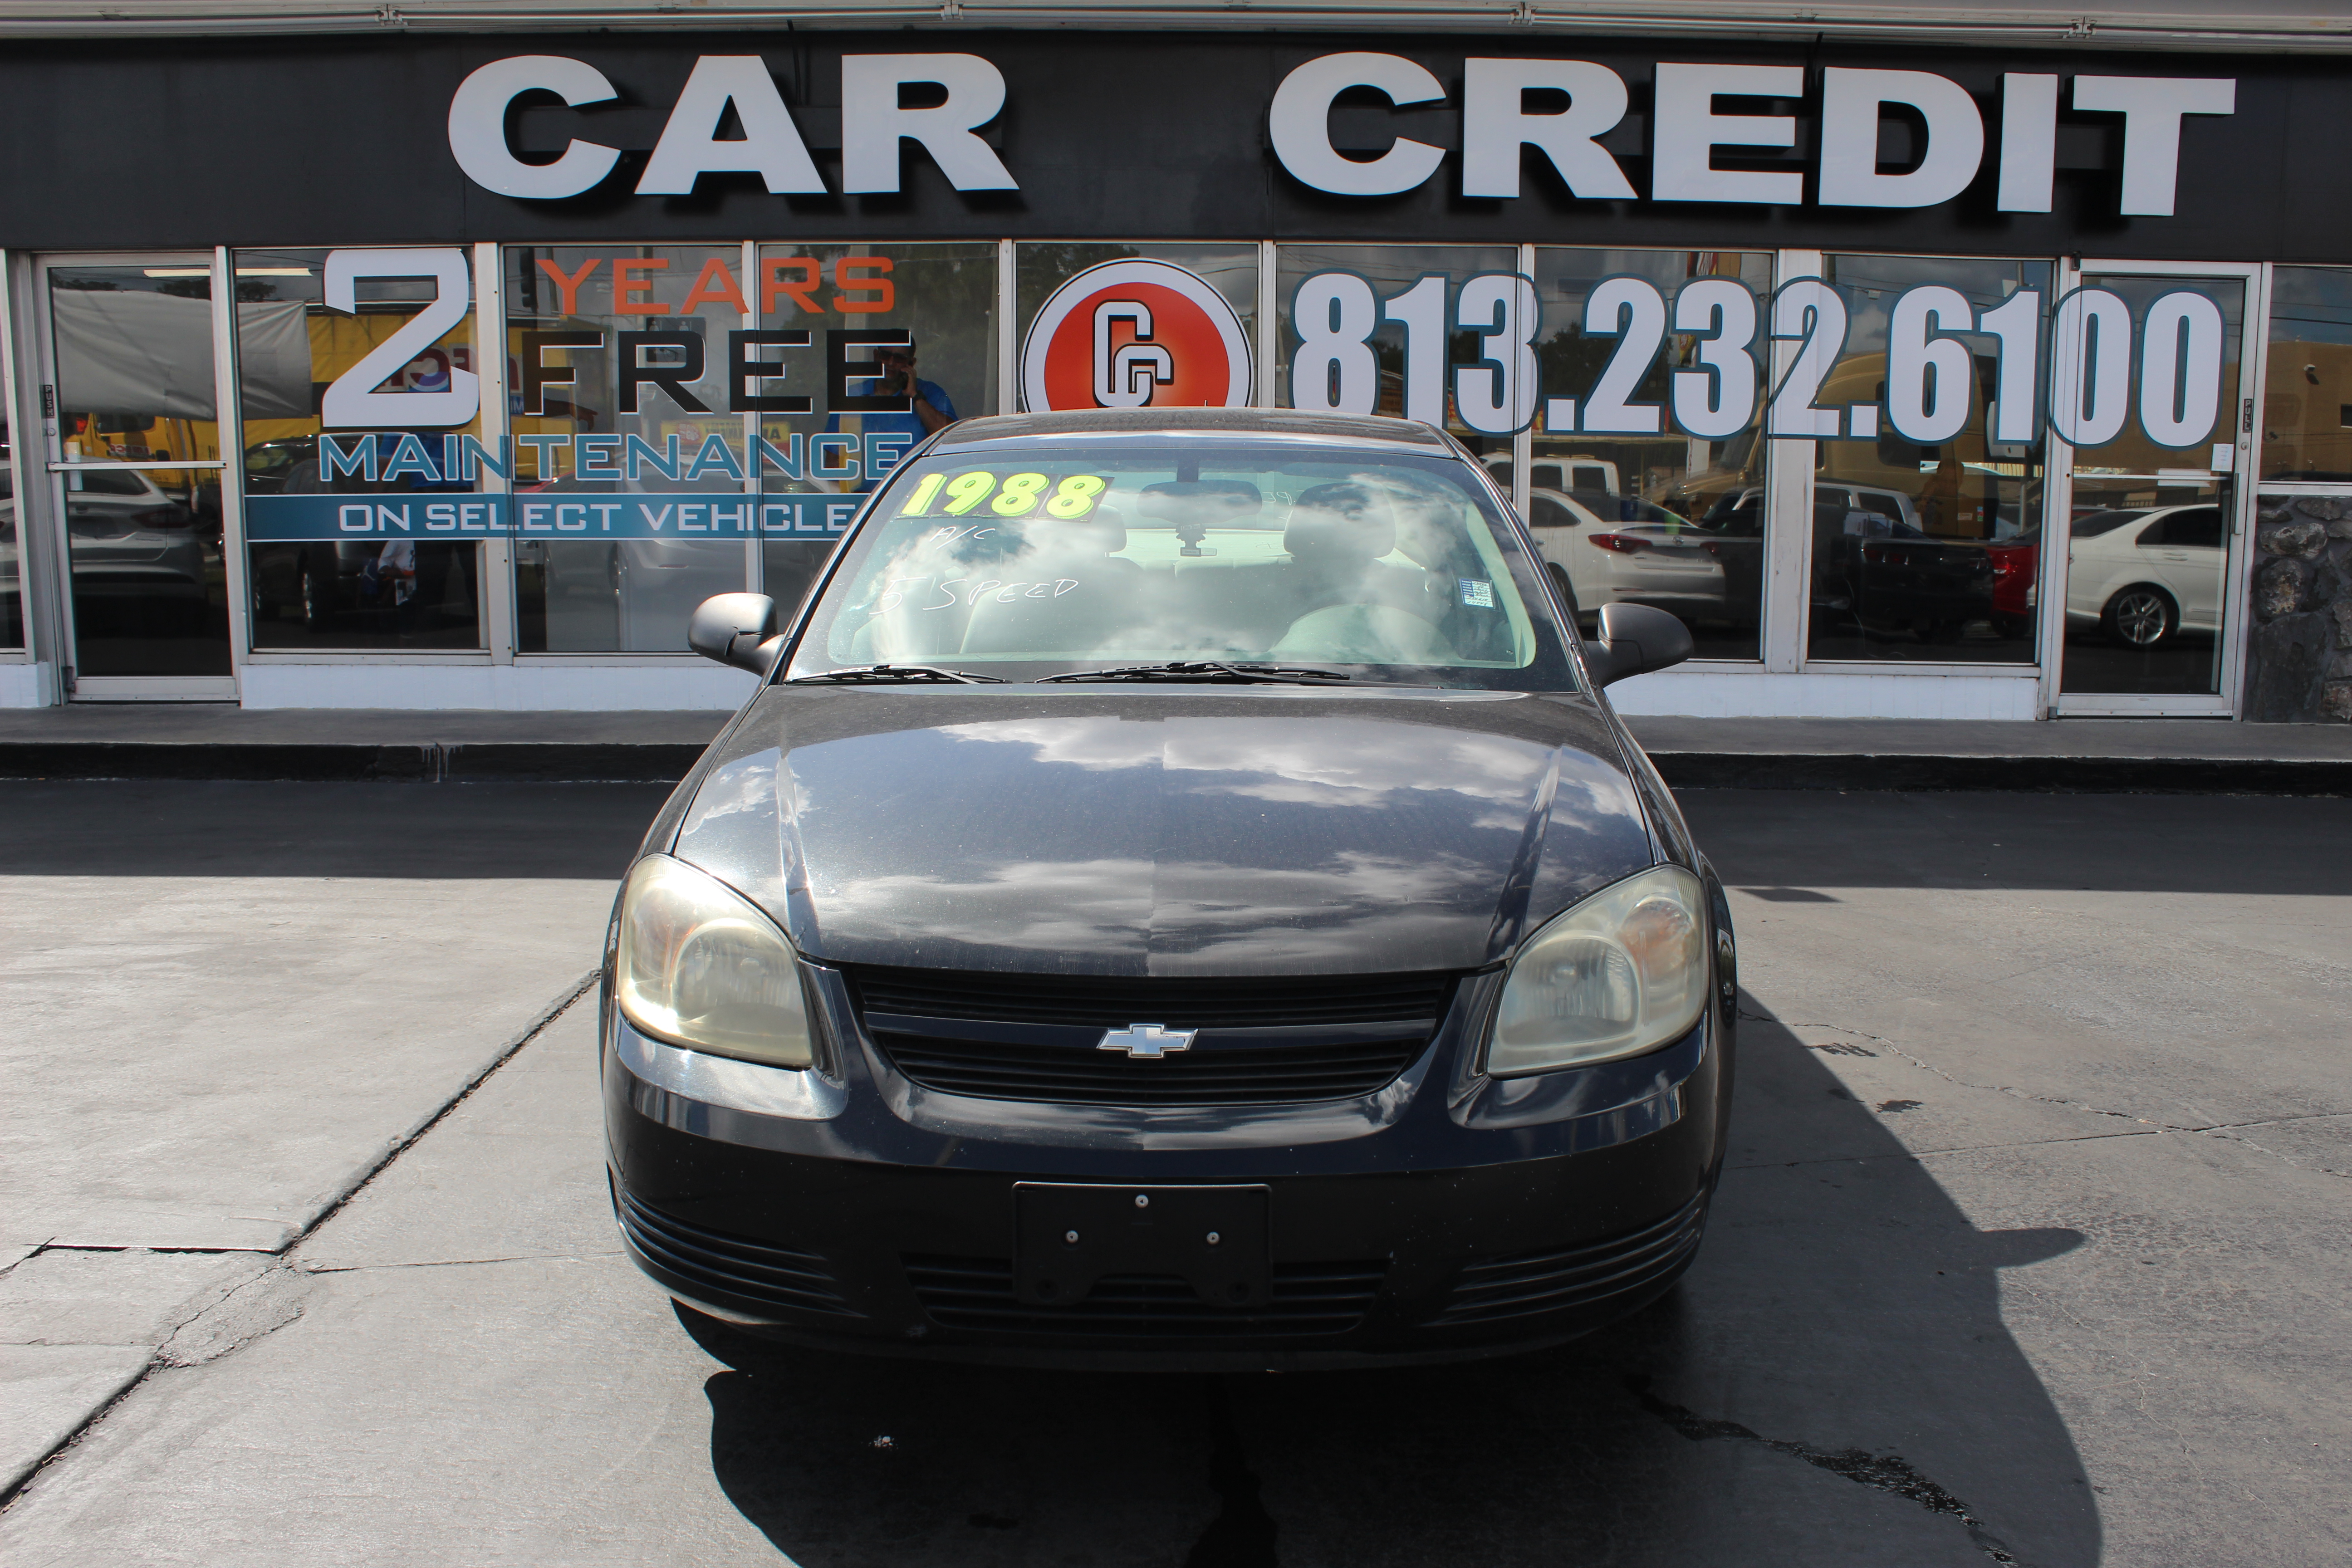 Pre-Owned 2010 Chevrolet Cobalt LS XFE